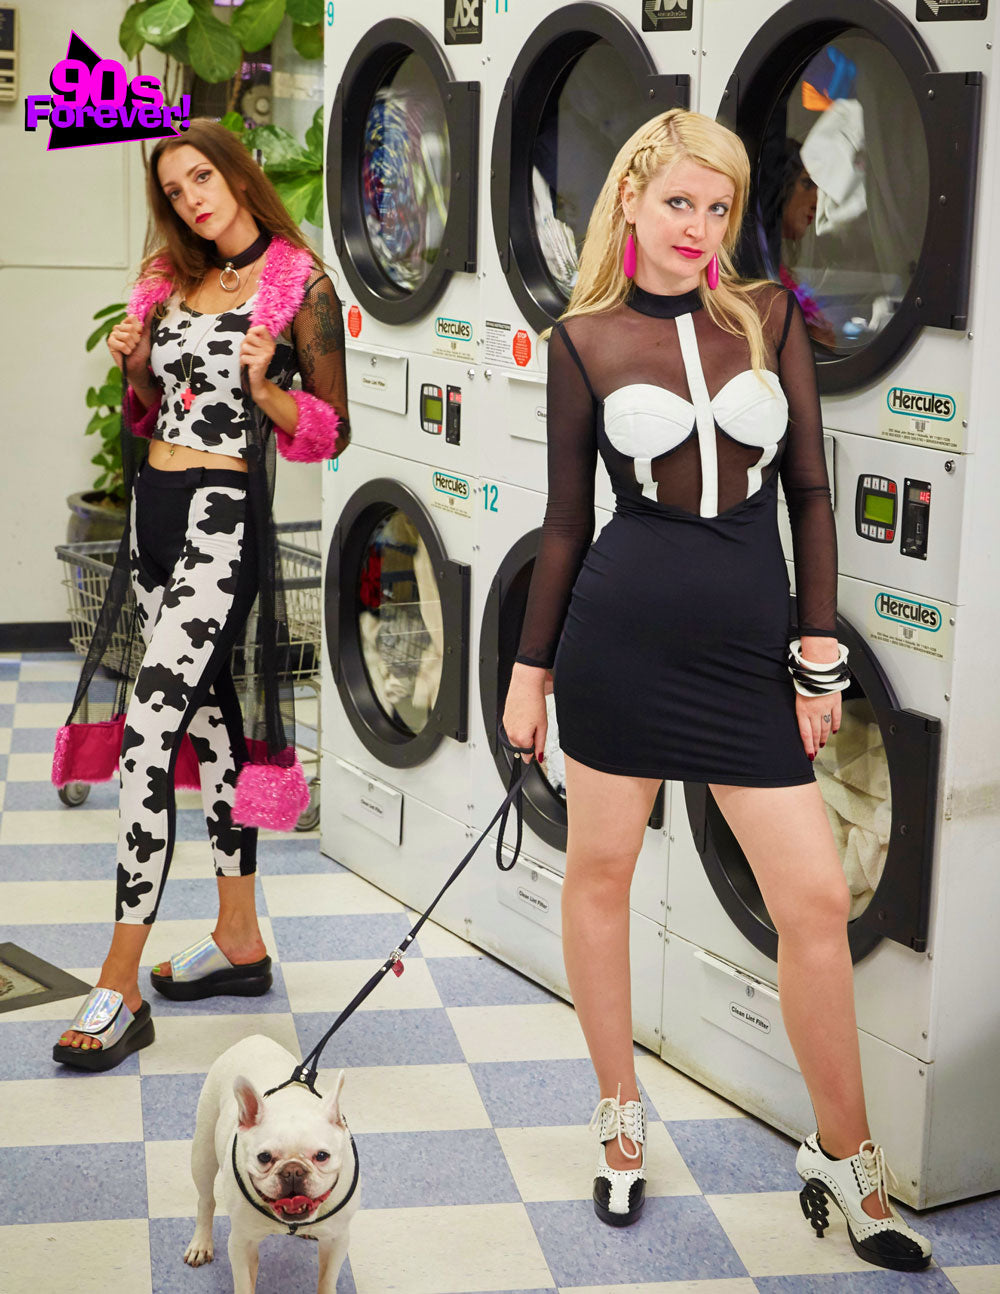 90s Forever Retro Vintage Fashion Apparel Lookbook - Cow Print Cotton Lycra Two-Piece Set and White and Black Mini Dress